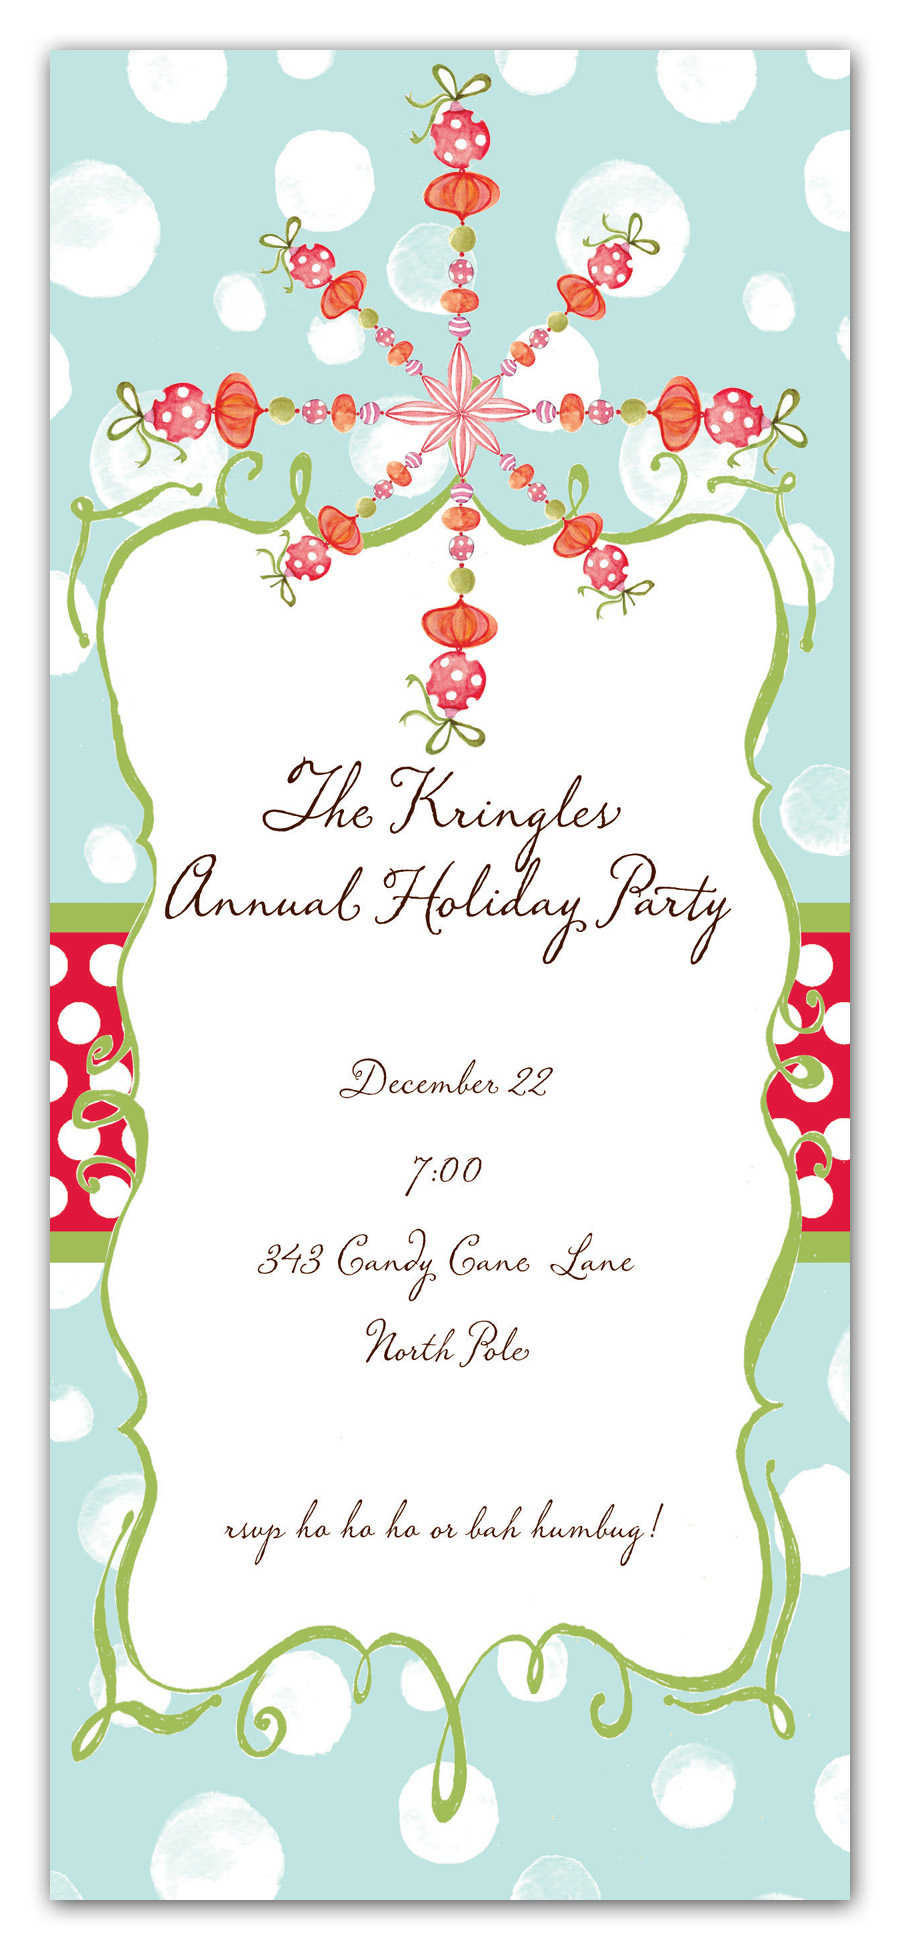 christmas party invitation templates word christmas christmas party invitation templates word christmas invitations christmas invitations for special events